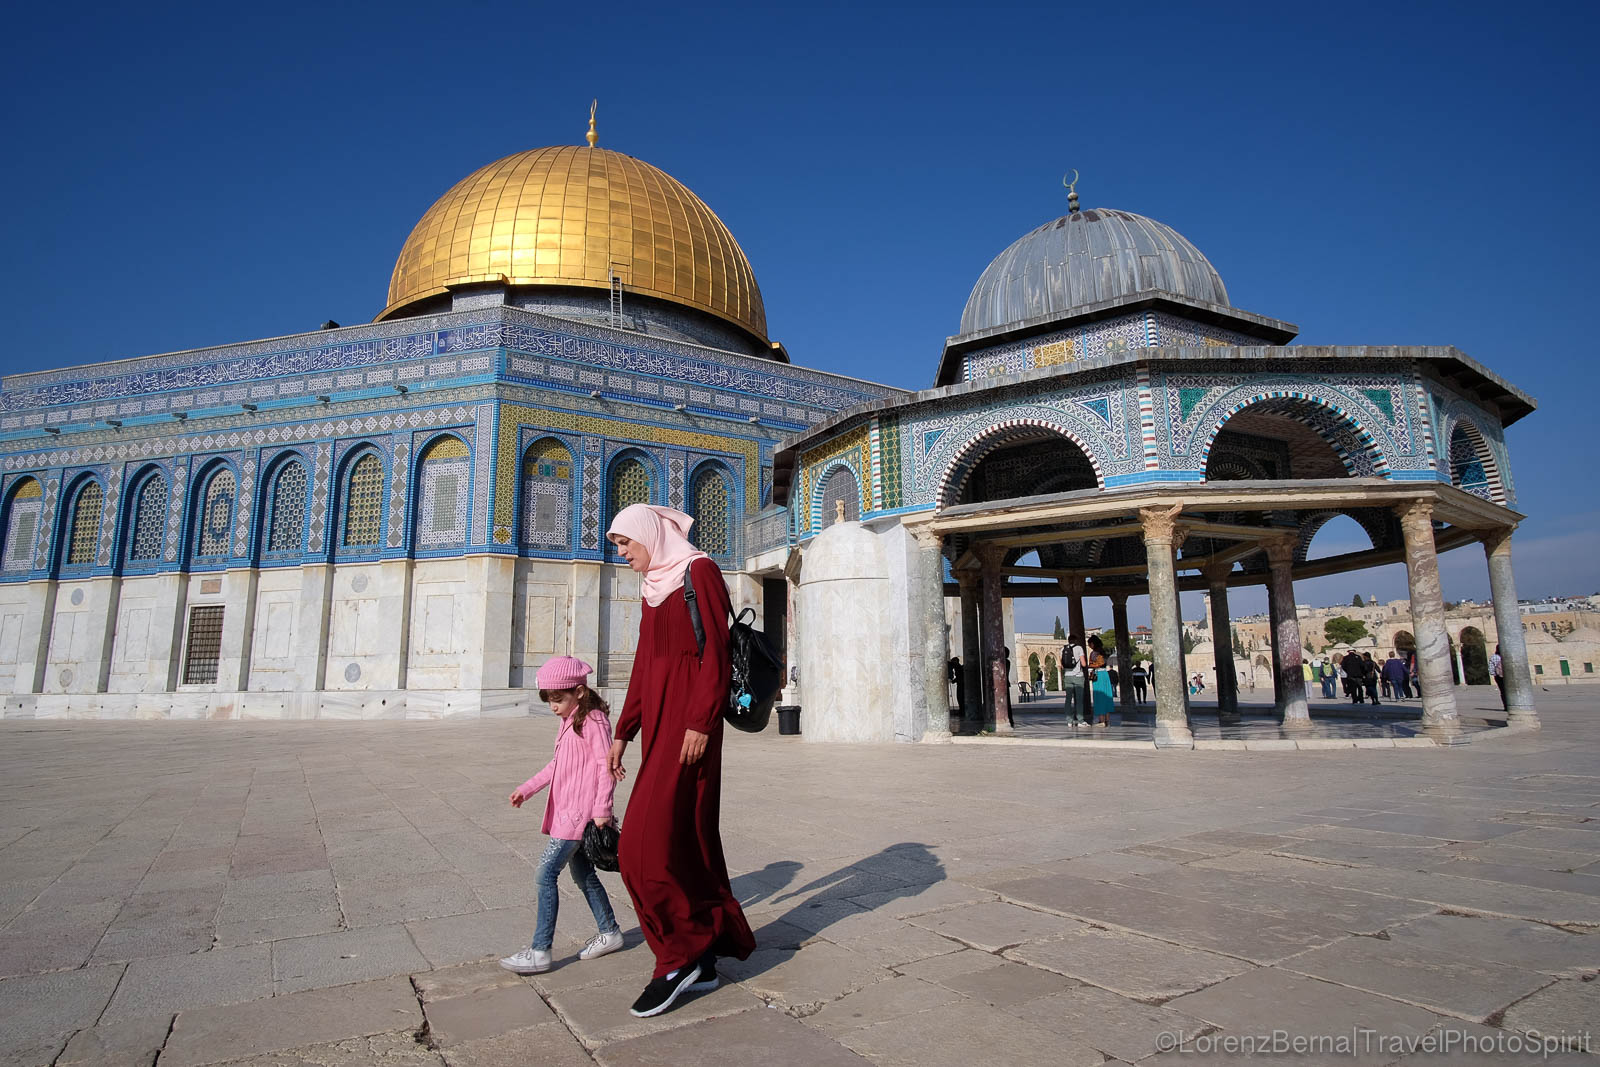 Mother and daughter went to pray on a holy Friday, at the Dome of the Rock mosque, Jerusalem, Israel.